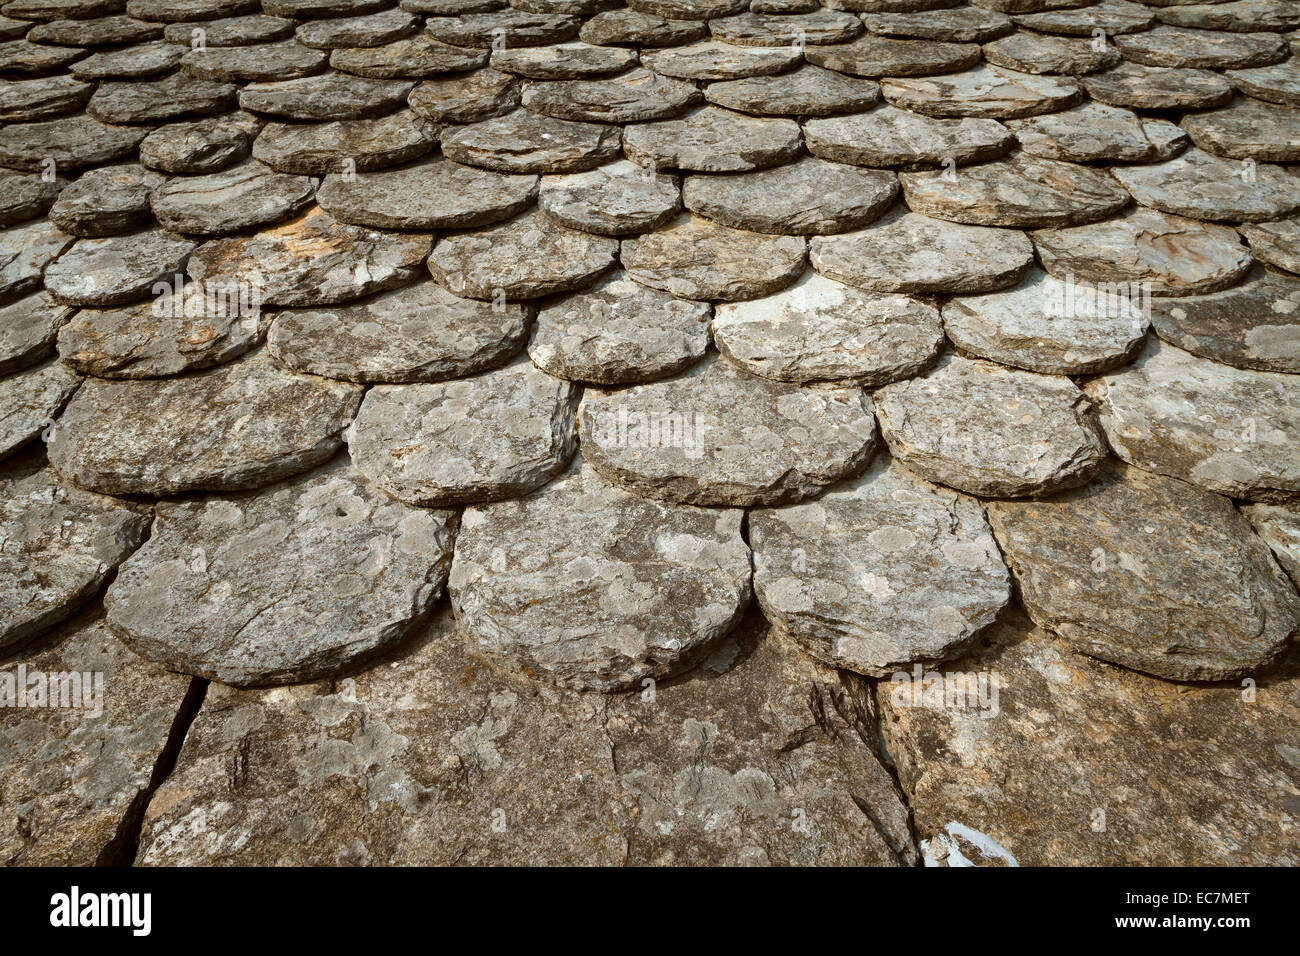 traditional schist roof cevennes, France. - Stock Image